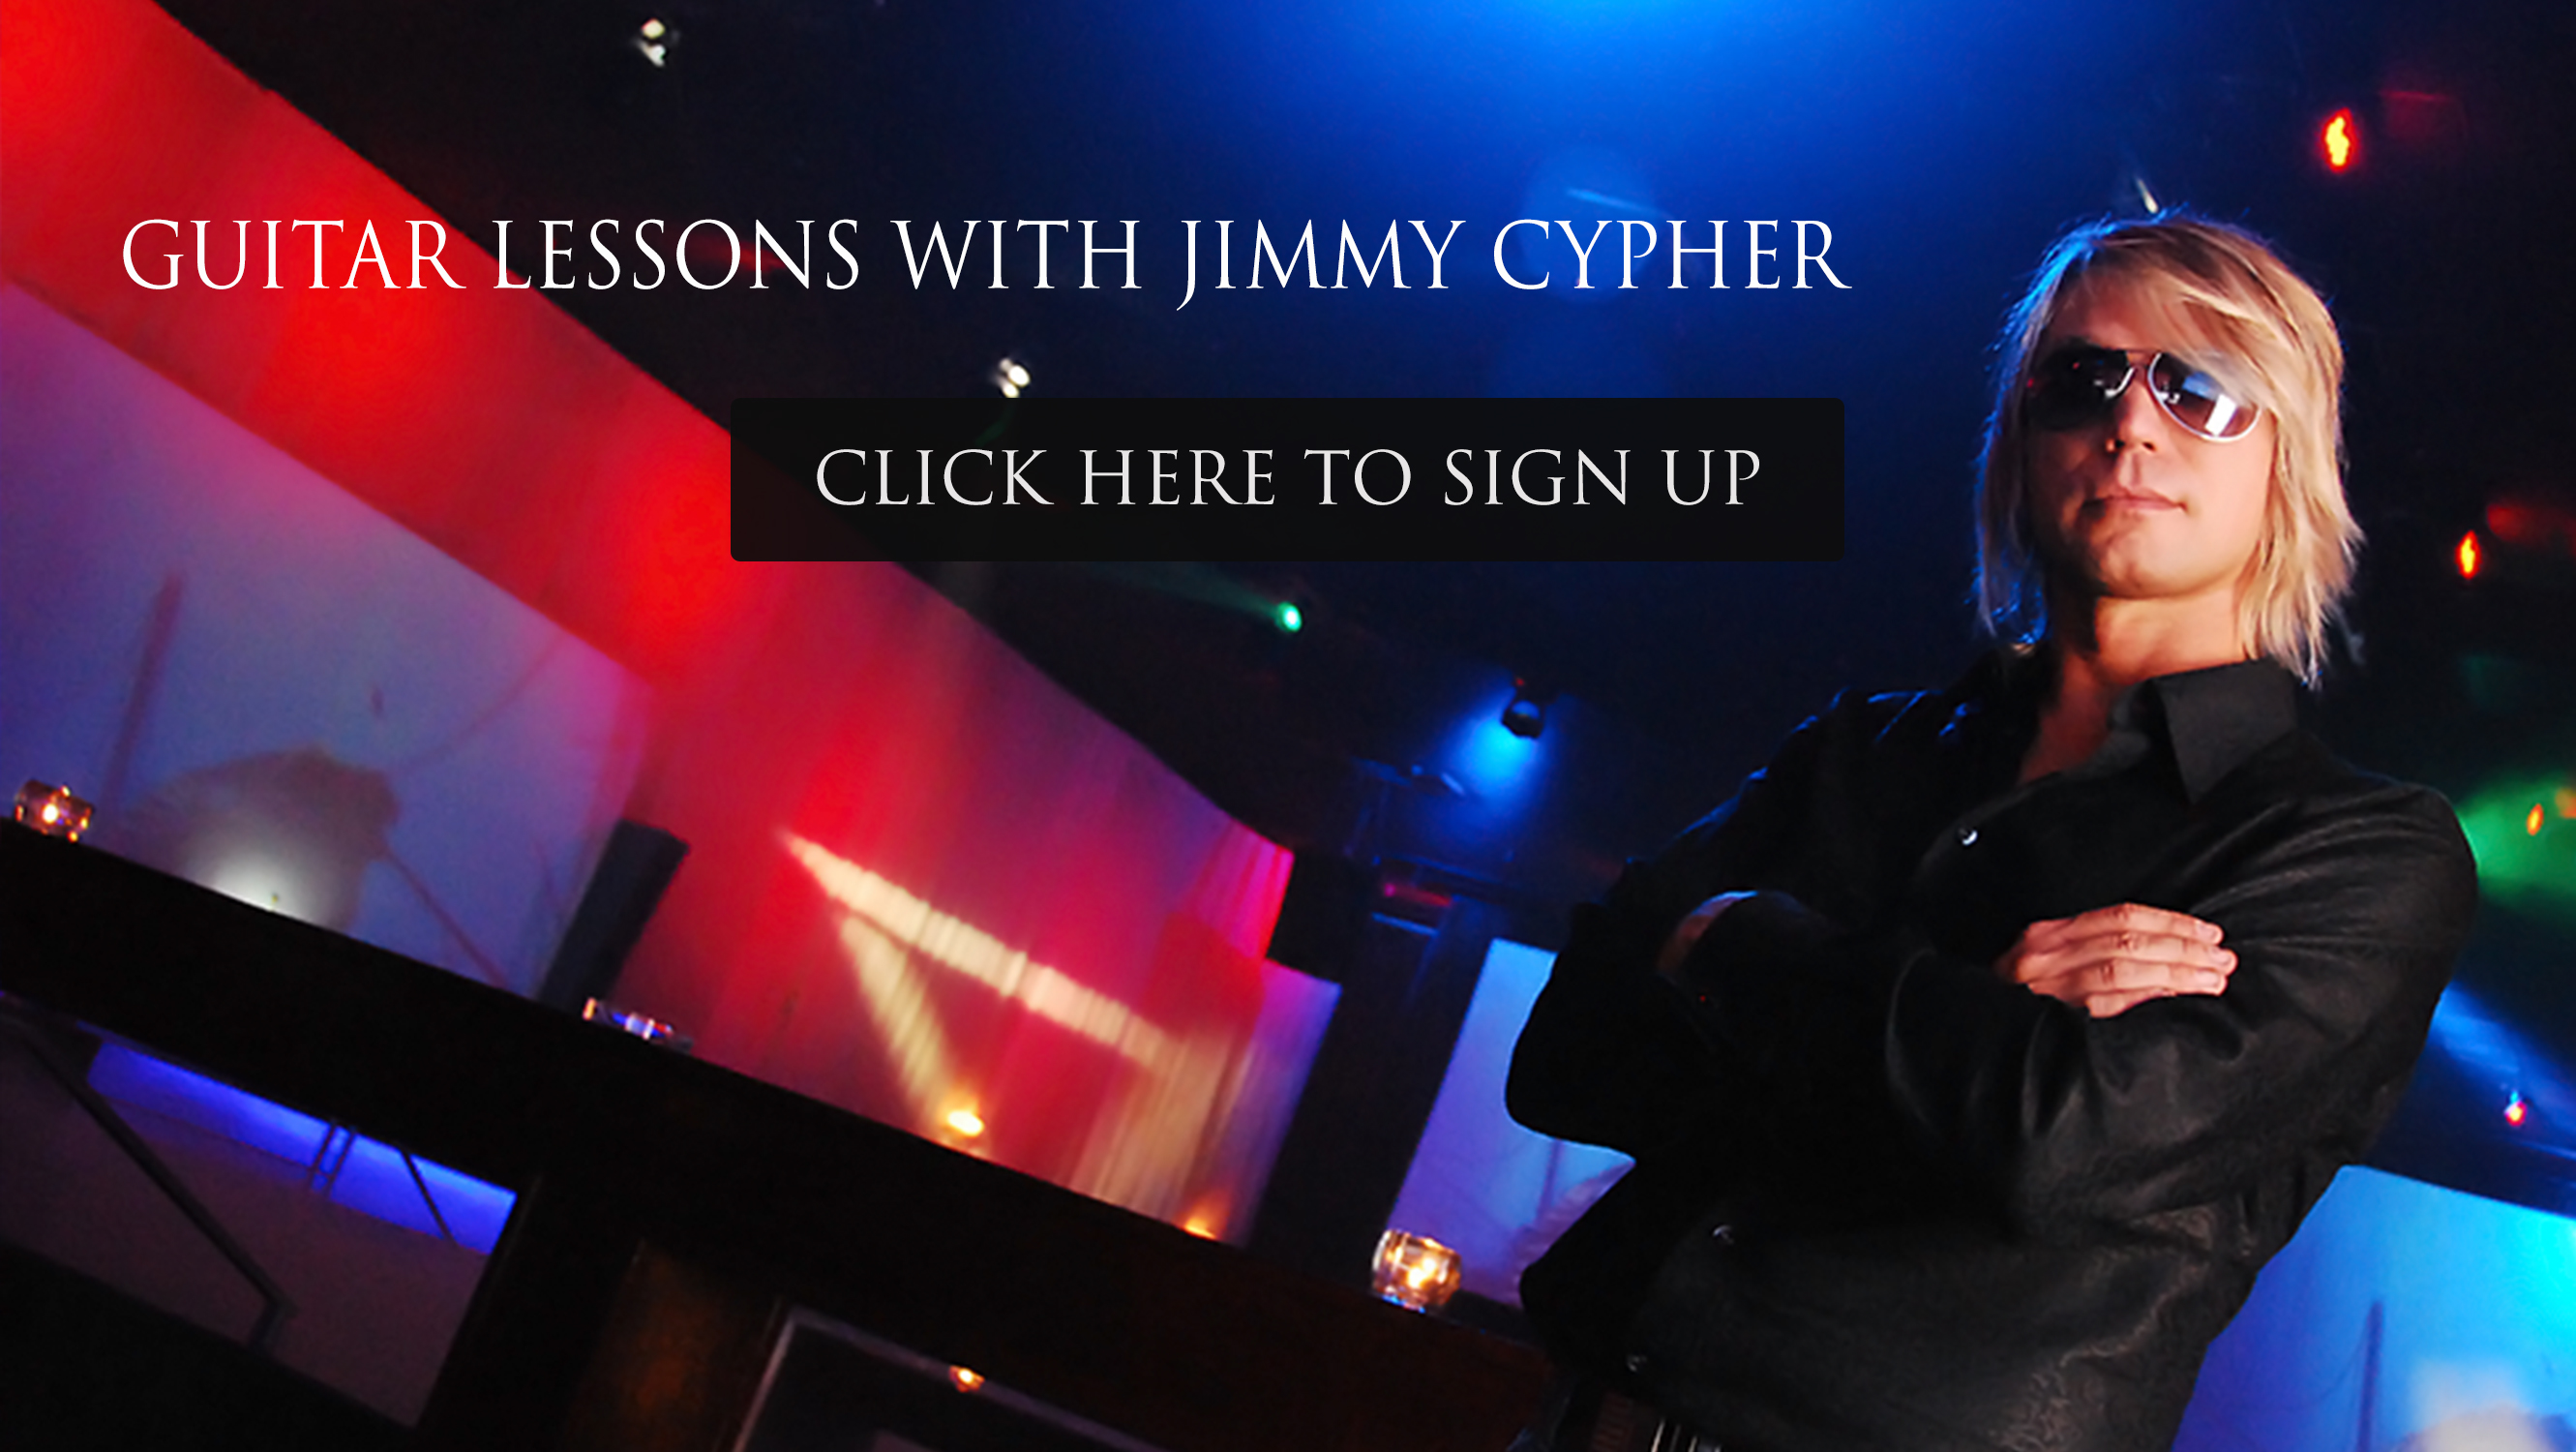 guitar-lessons-jimmy